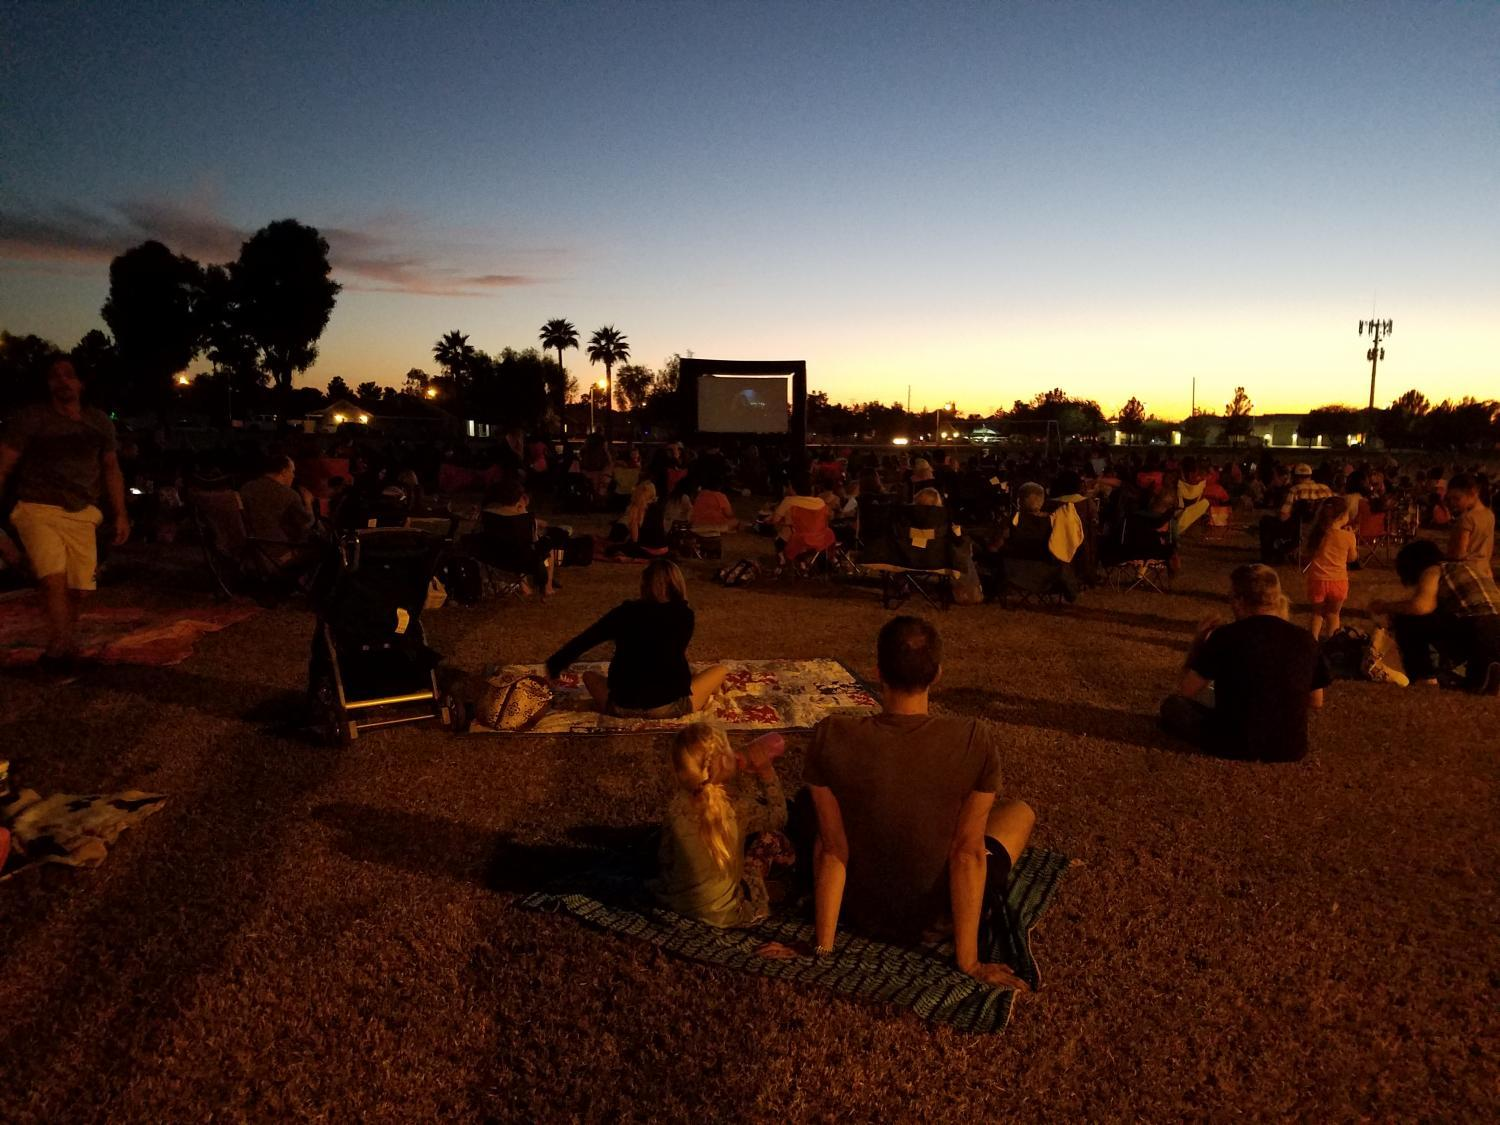 people enjoy a movie at a park